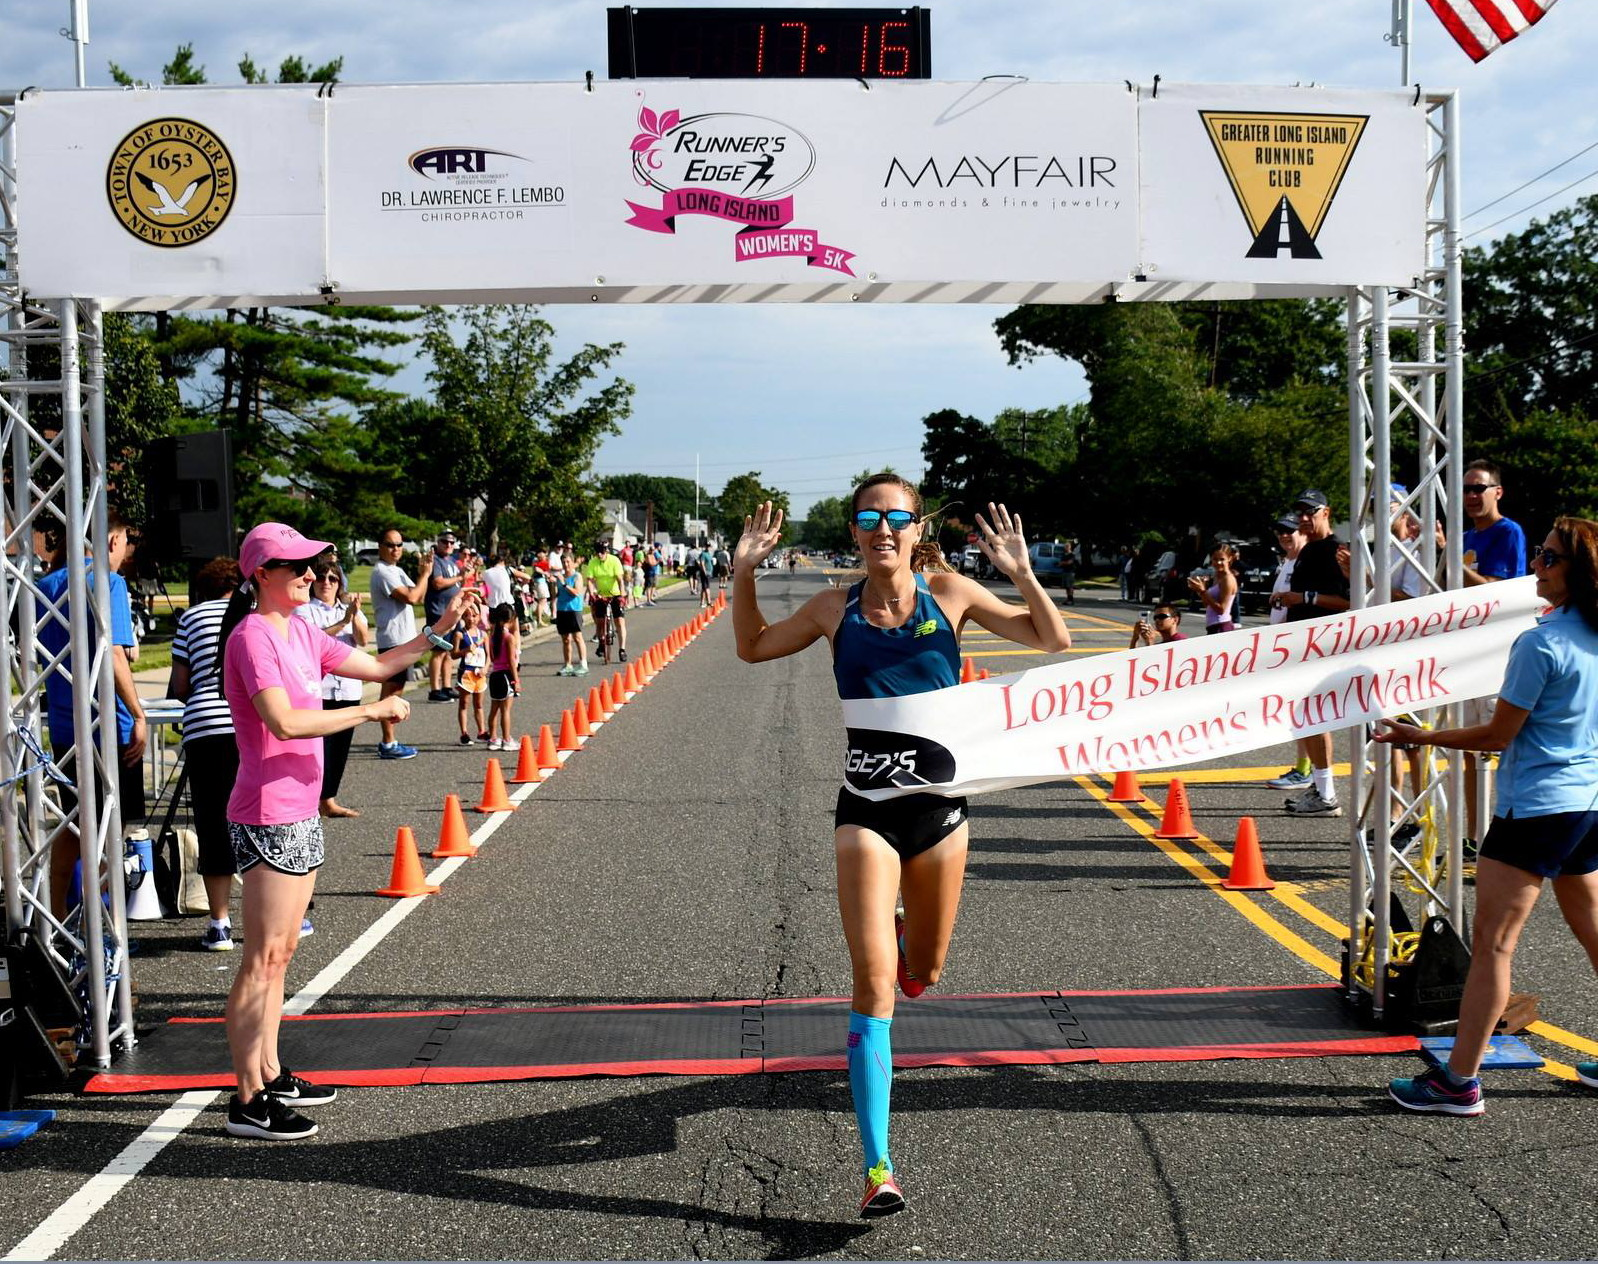 Lianne Farber winning the 2017 Runner's Edge Long Island Women's 5K Run